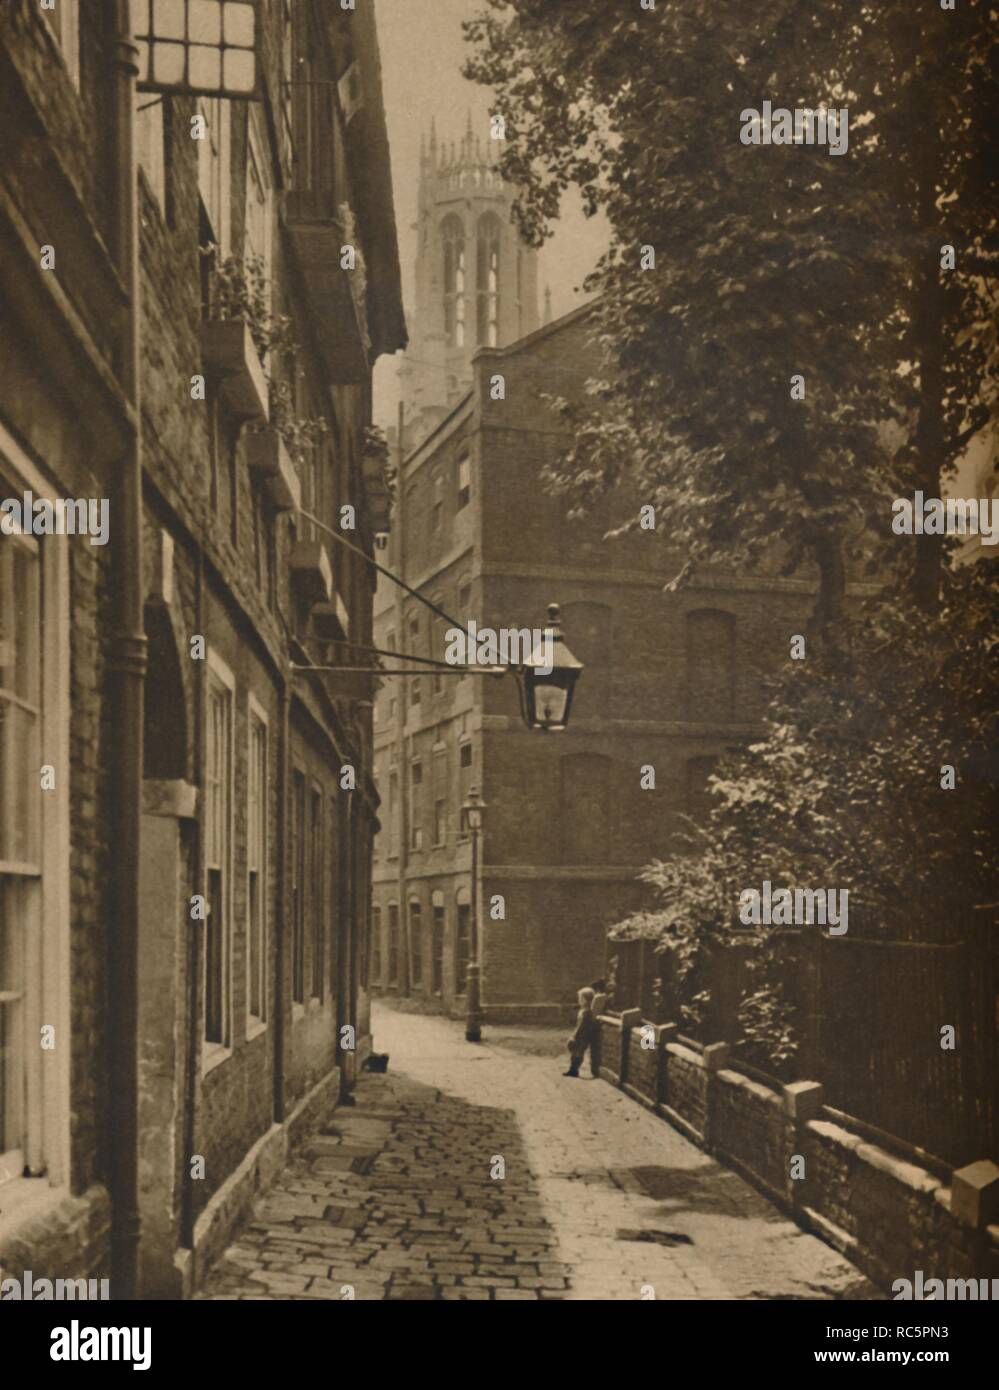 'Clifford's Inn: The Oldest and One of the Most Important Inns of Chancery', c1935. Creator: Unknown. - Stock Image